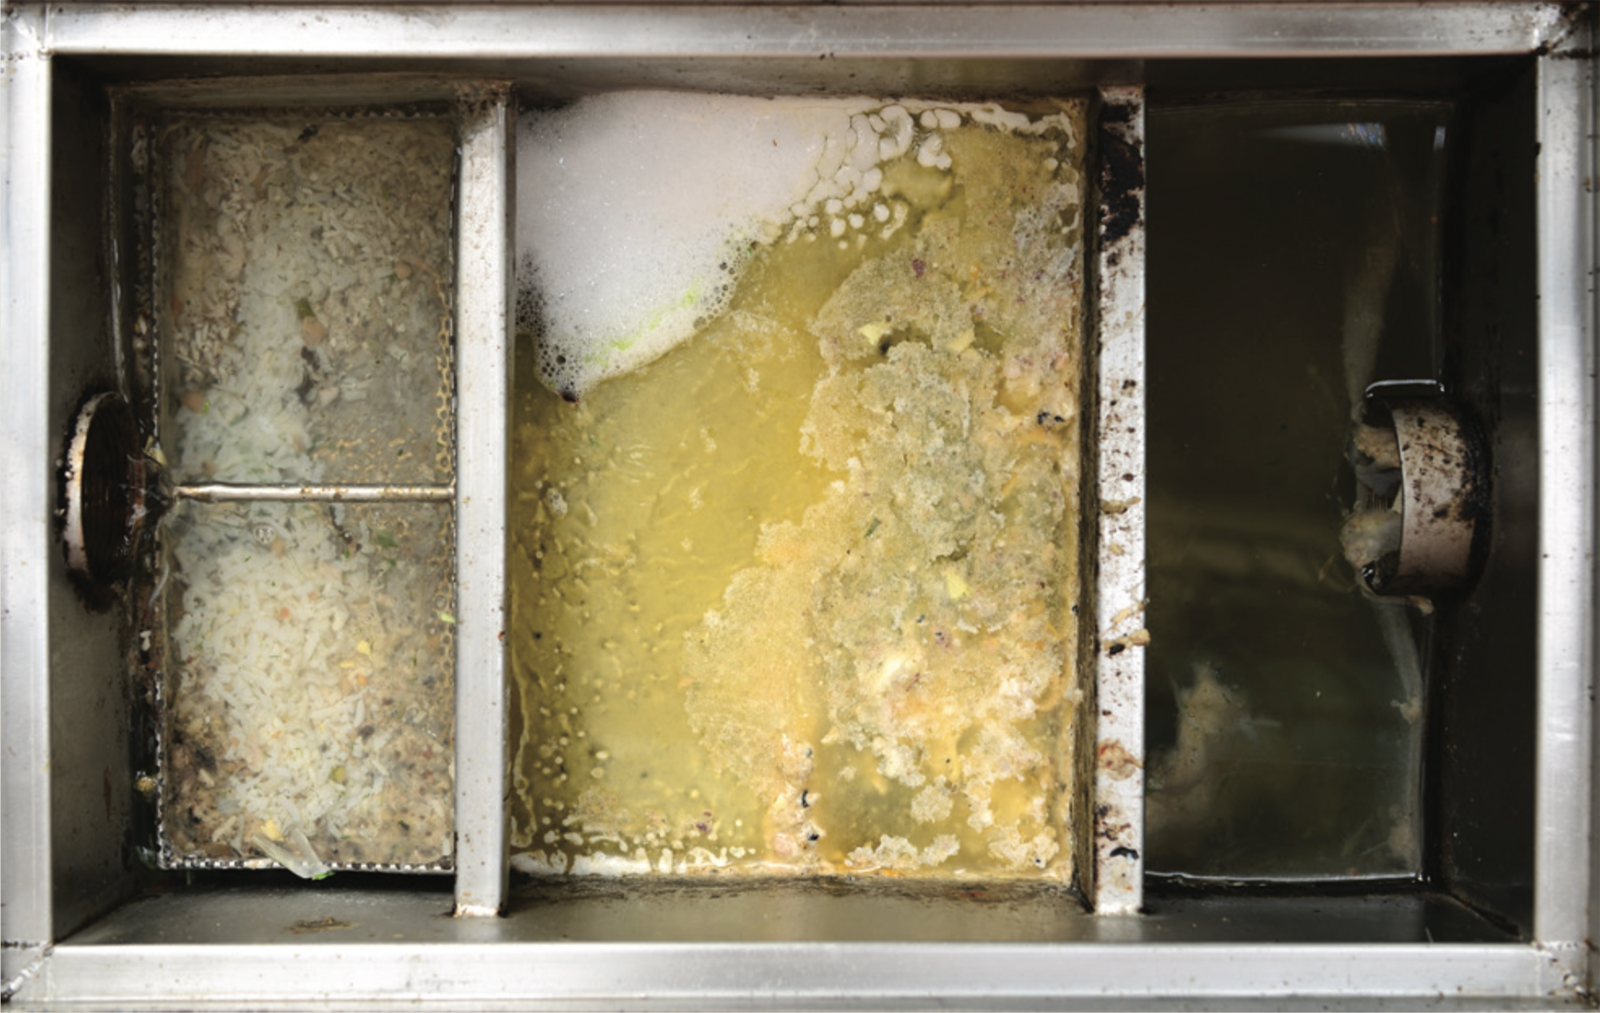 Commercial kitchens are required to fit some type of grease interceptor to collect fat before it enters the sewer.